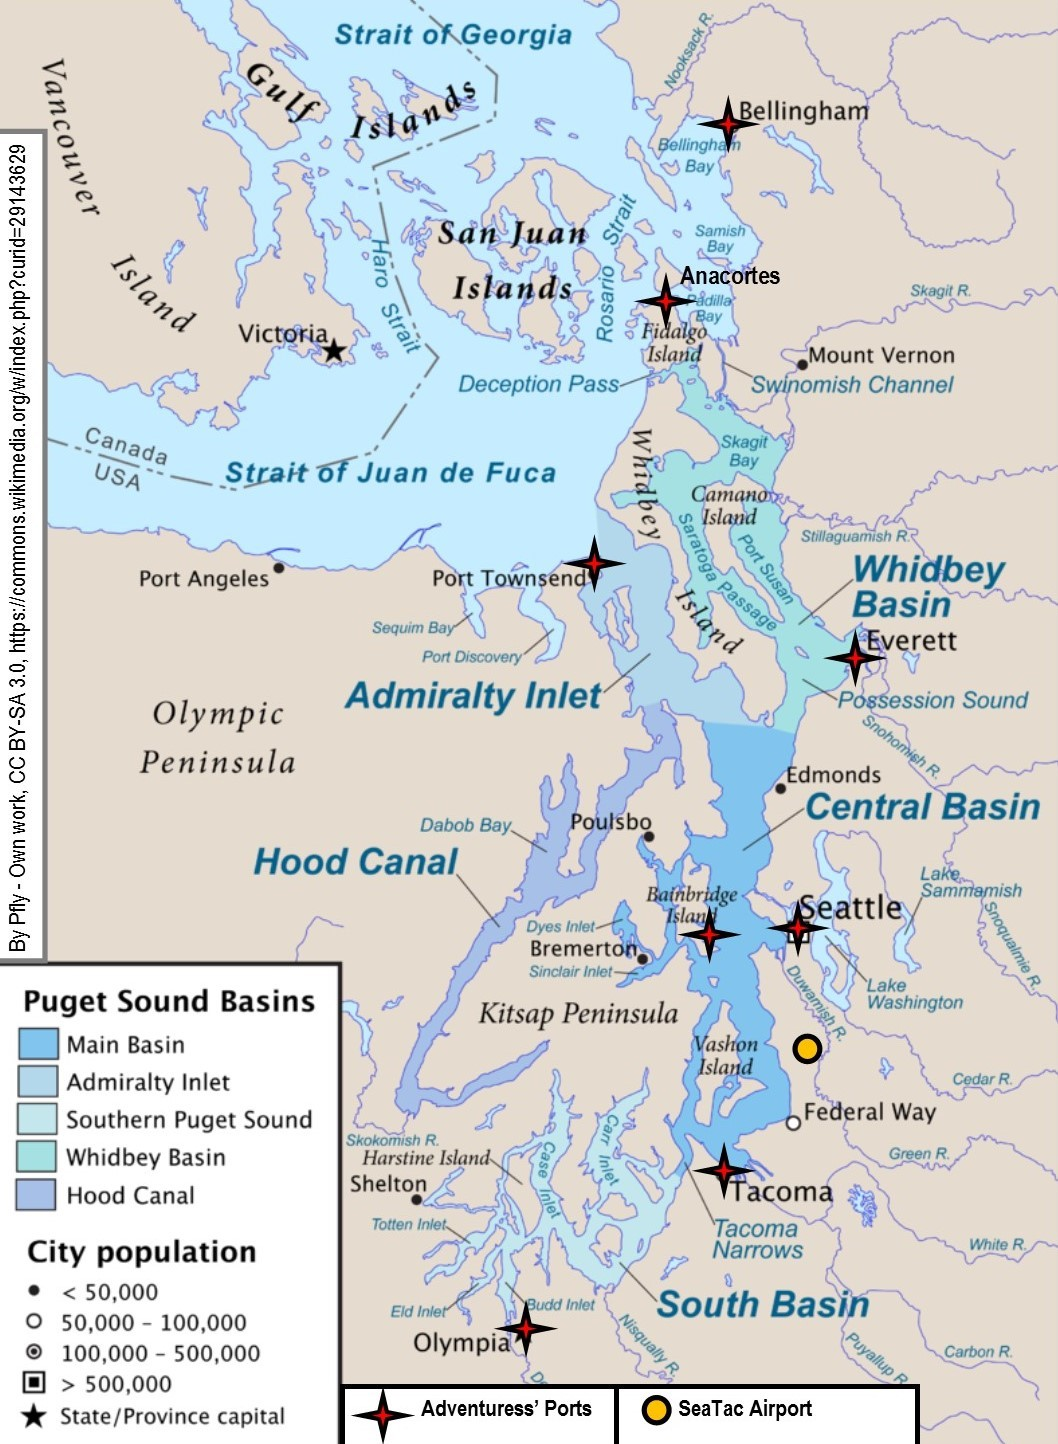 Map of Puget Sound for Packet